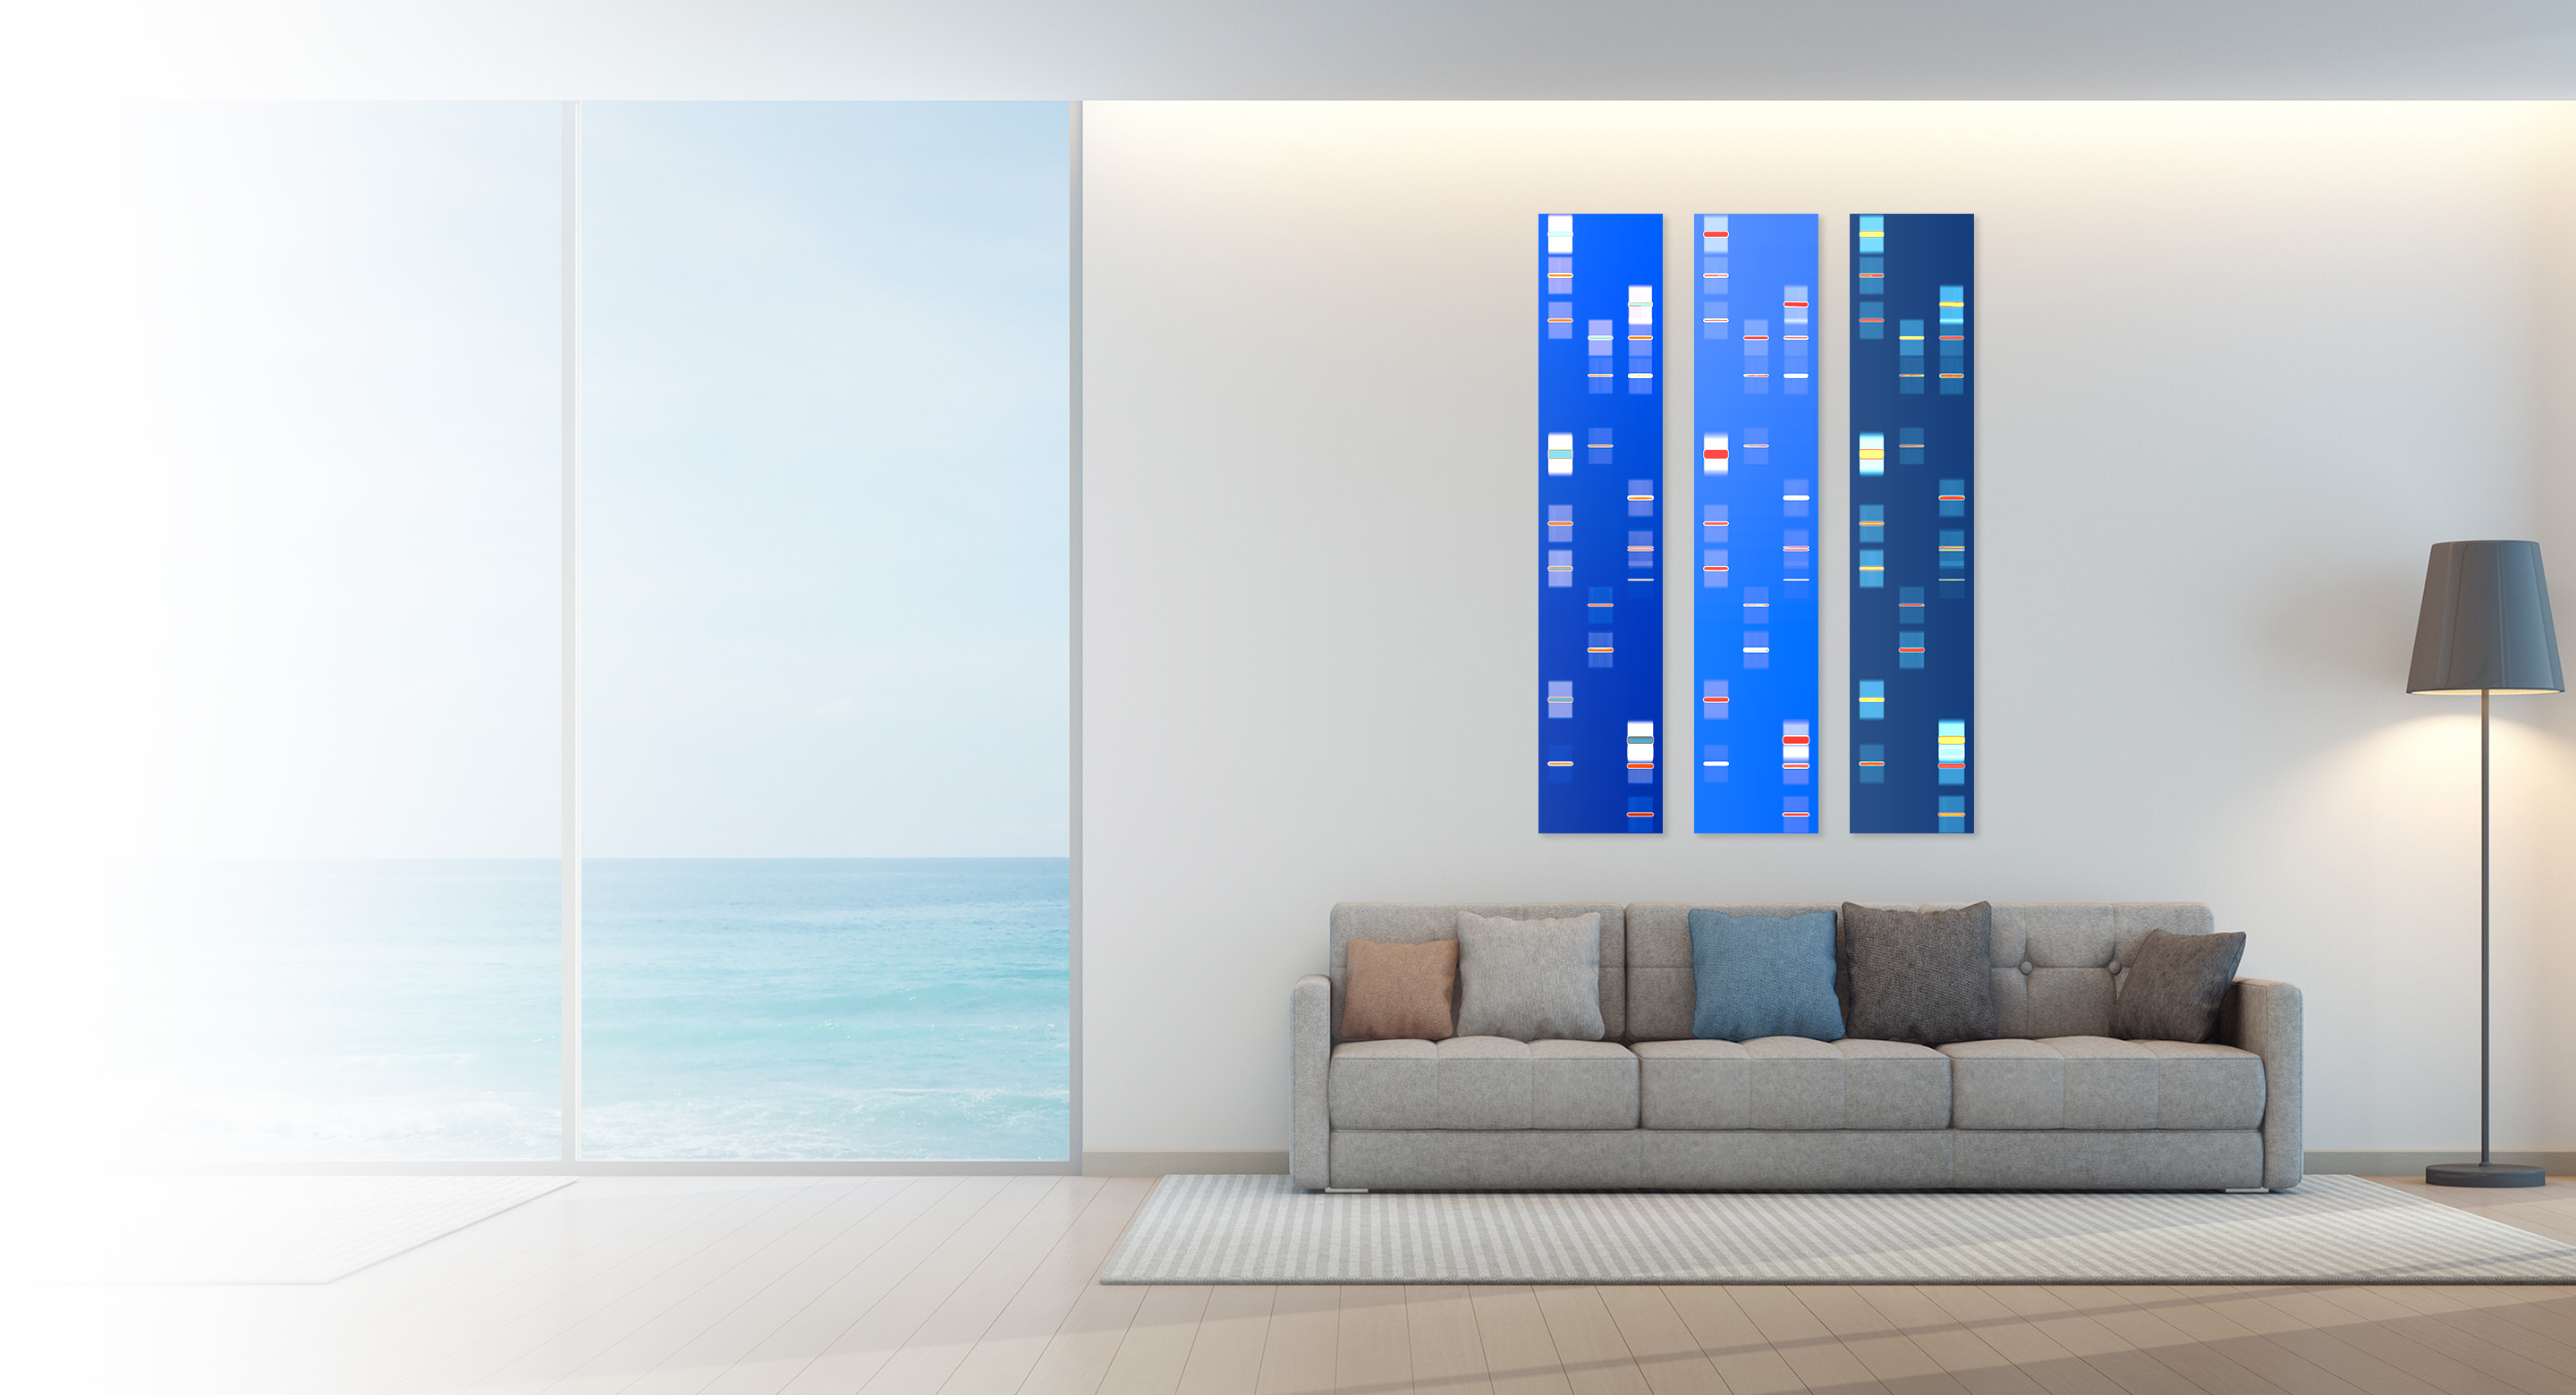 DNA Art US produces personalized artwork for you, your family and for corporate offices that works with all gene tests such as 23andMe, AncestryDNA, Helix, Family Tree DNA, MyHeritage, Veritas Genetics, Genos, Illumina & genome sequencing.